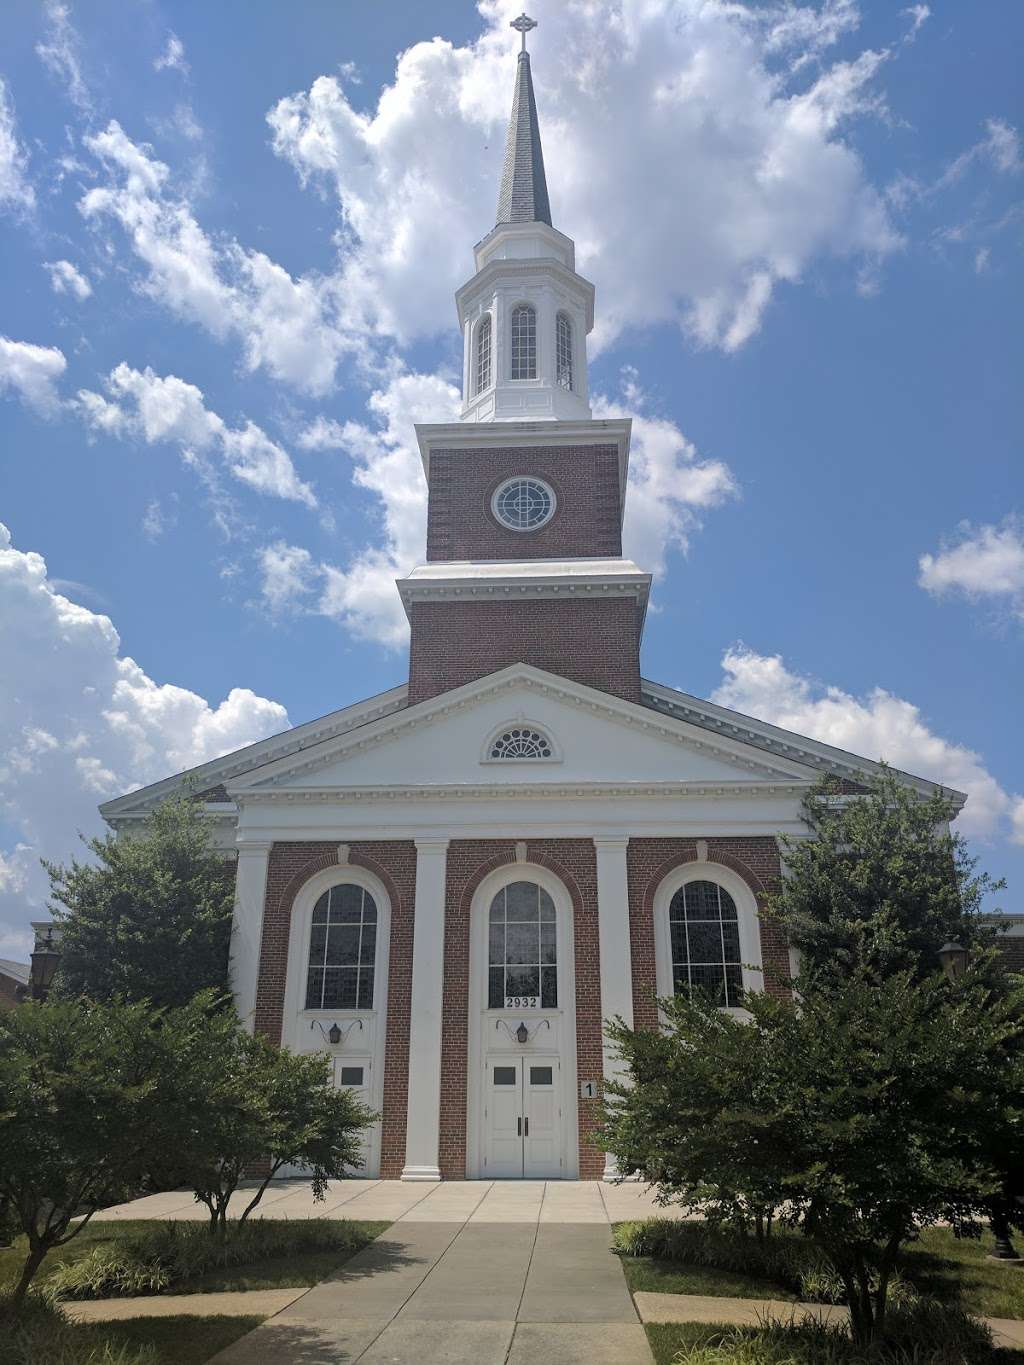 First Baptist Church of Alexandria - church  | Photo 6 of 10 | Address: 2932 King St, Alexandria, VA 22302, USA | Phone: (703) 684-3720